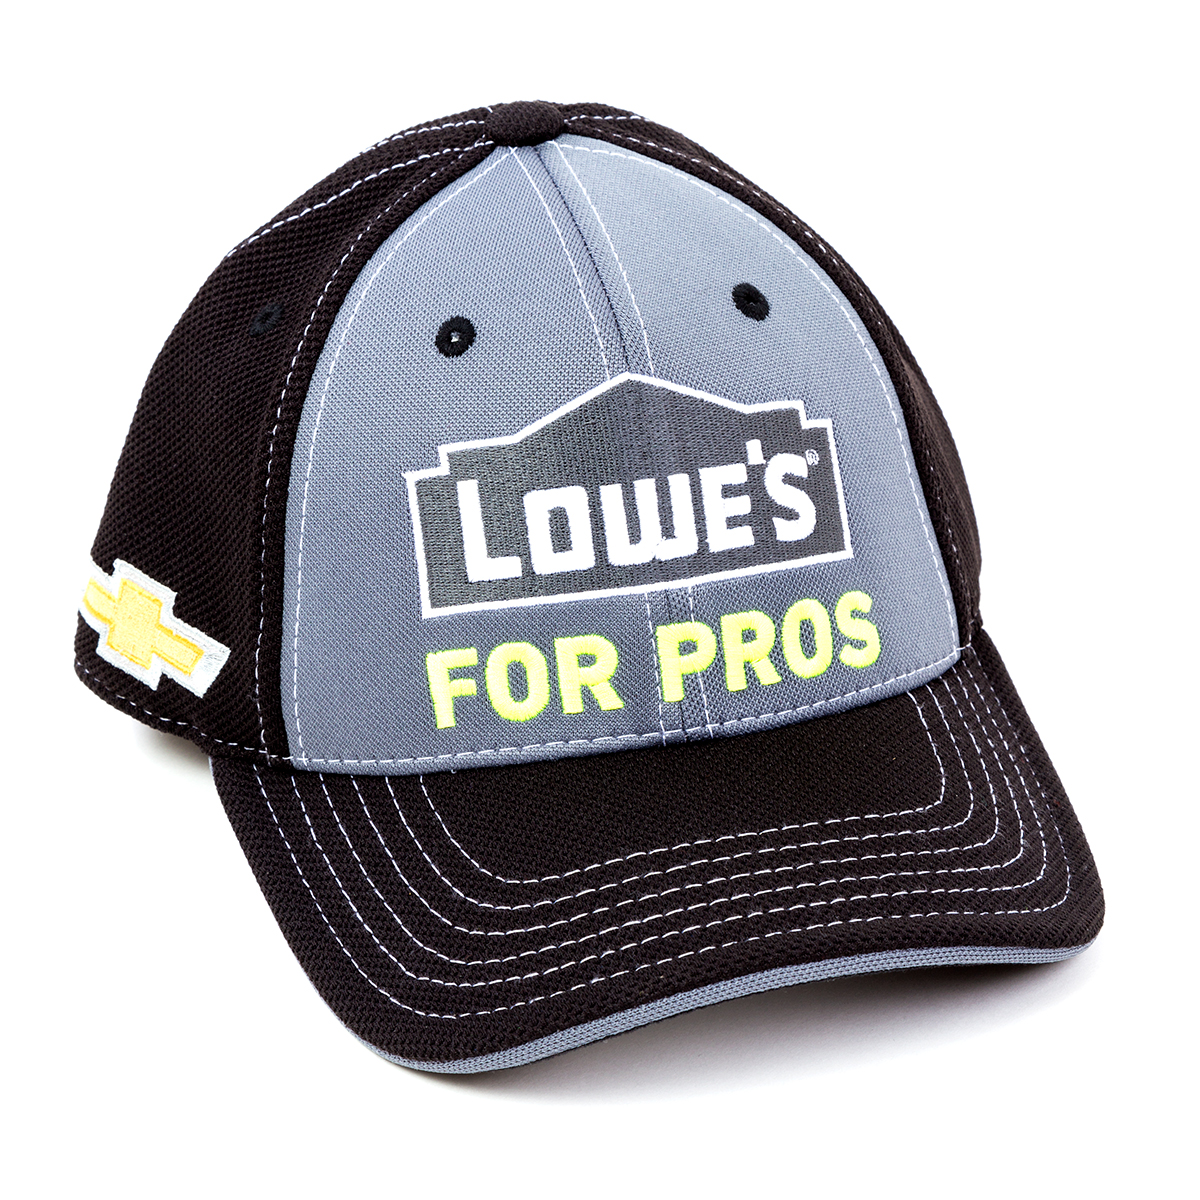 Lowes #48 2018 Team Hat